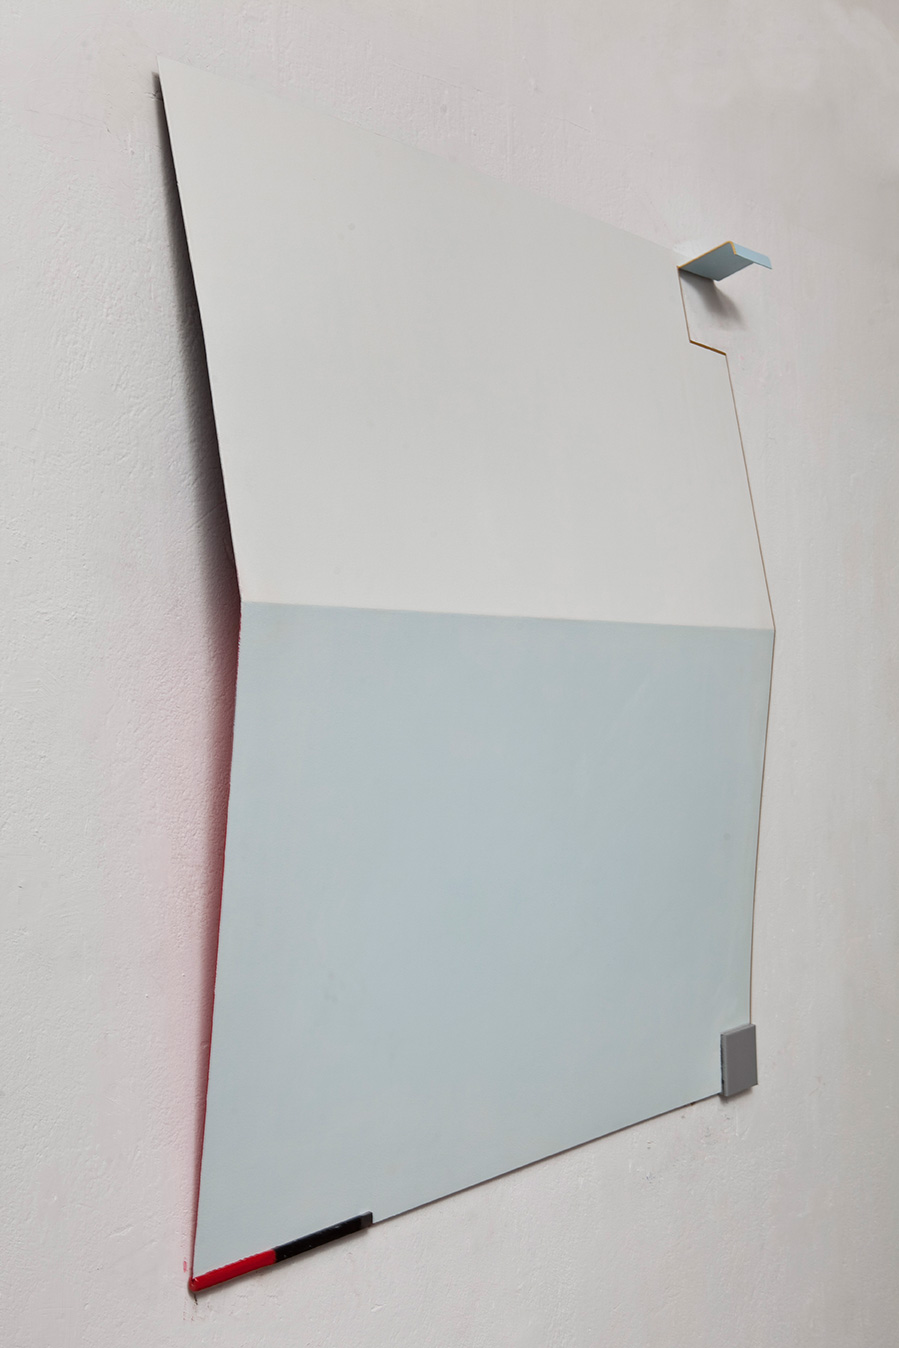 11.%22Untitled%22, 2015, acrylic and epoxi color on metal sheet,110x100cm_side C.jpg